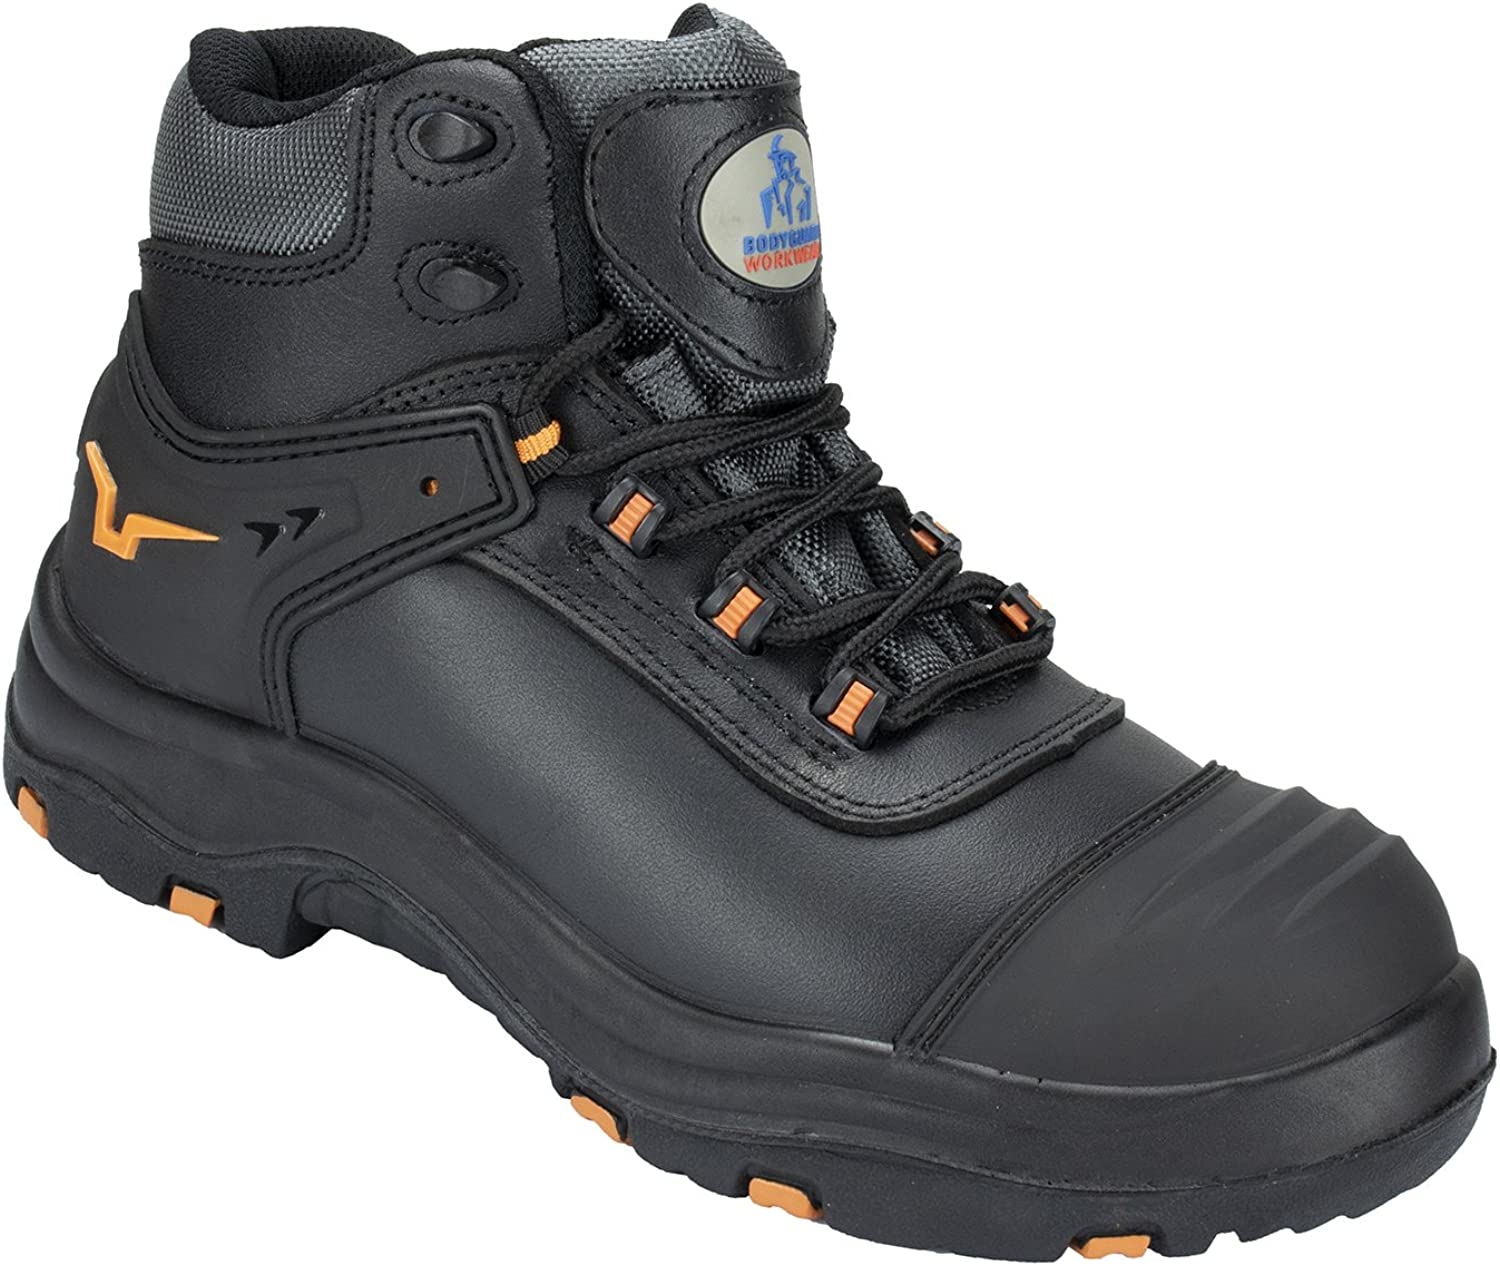 Dynamic Safety Work Boot, High Ankle